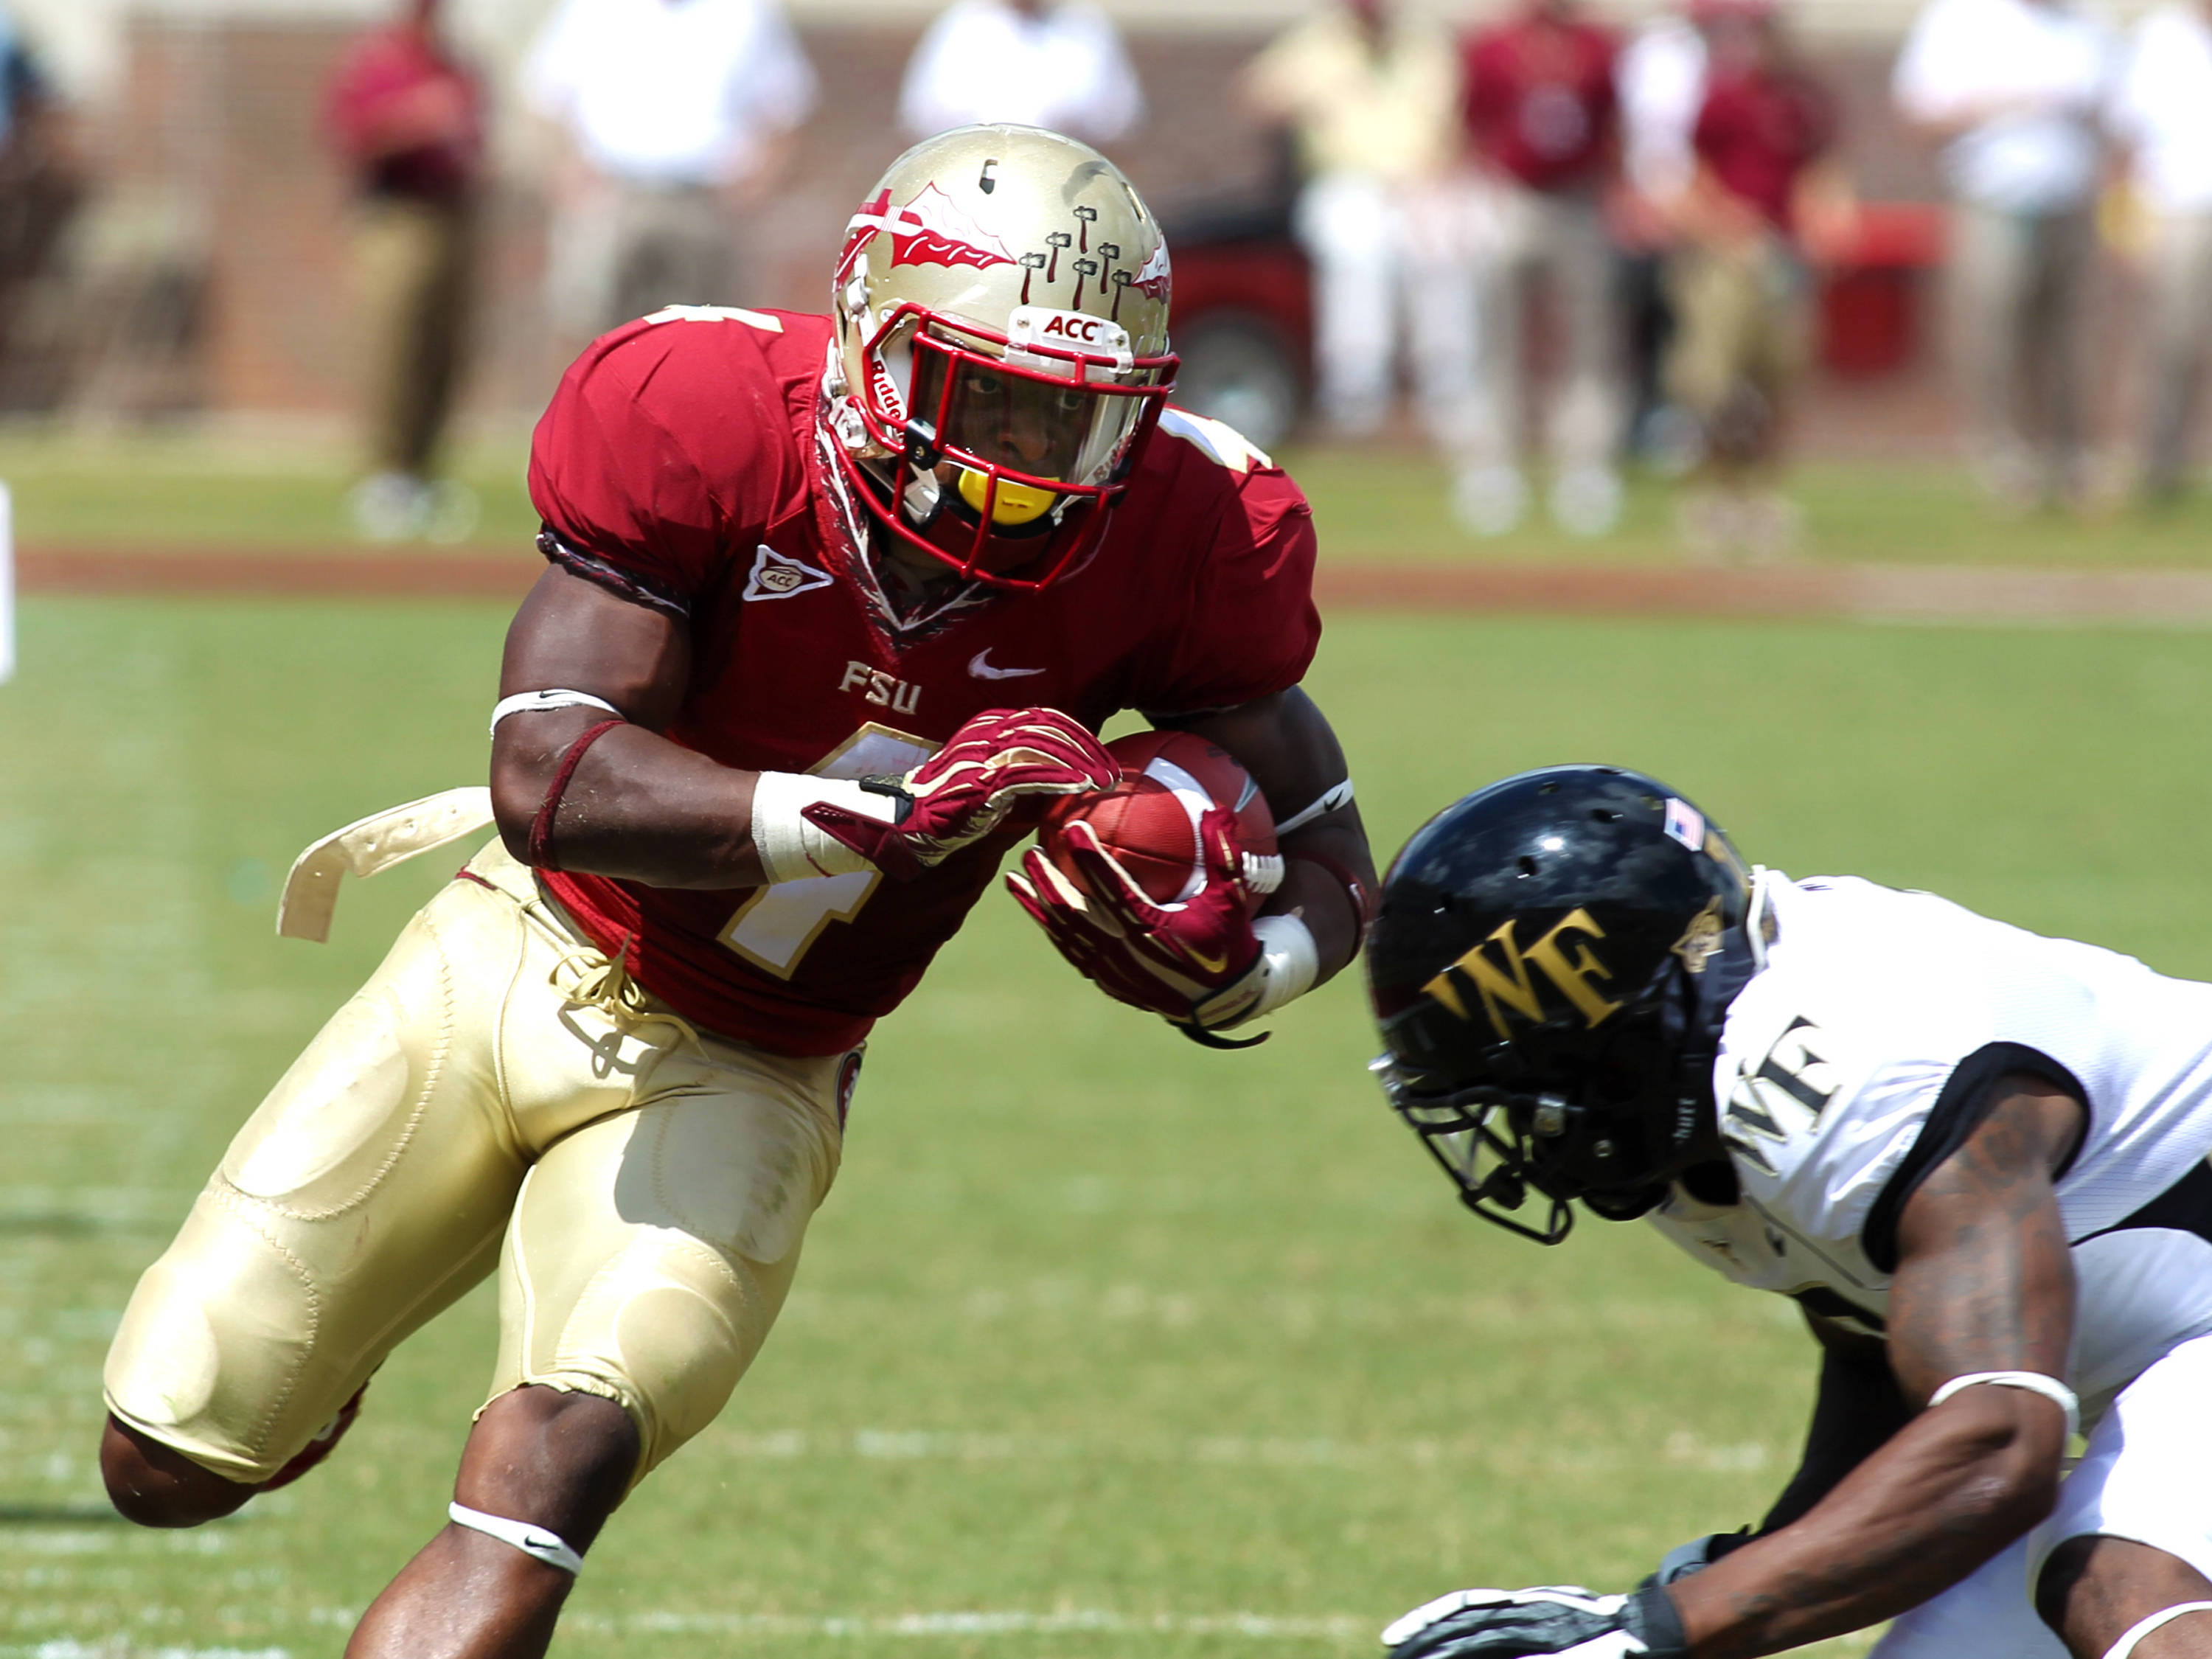 Chris Thompson (4) bracing to get hit , FSU vs Wake Forest, 9/15/12 (Photo by Steve Musco)